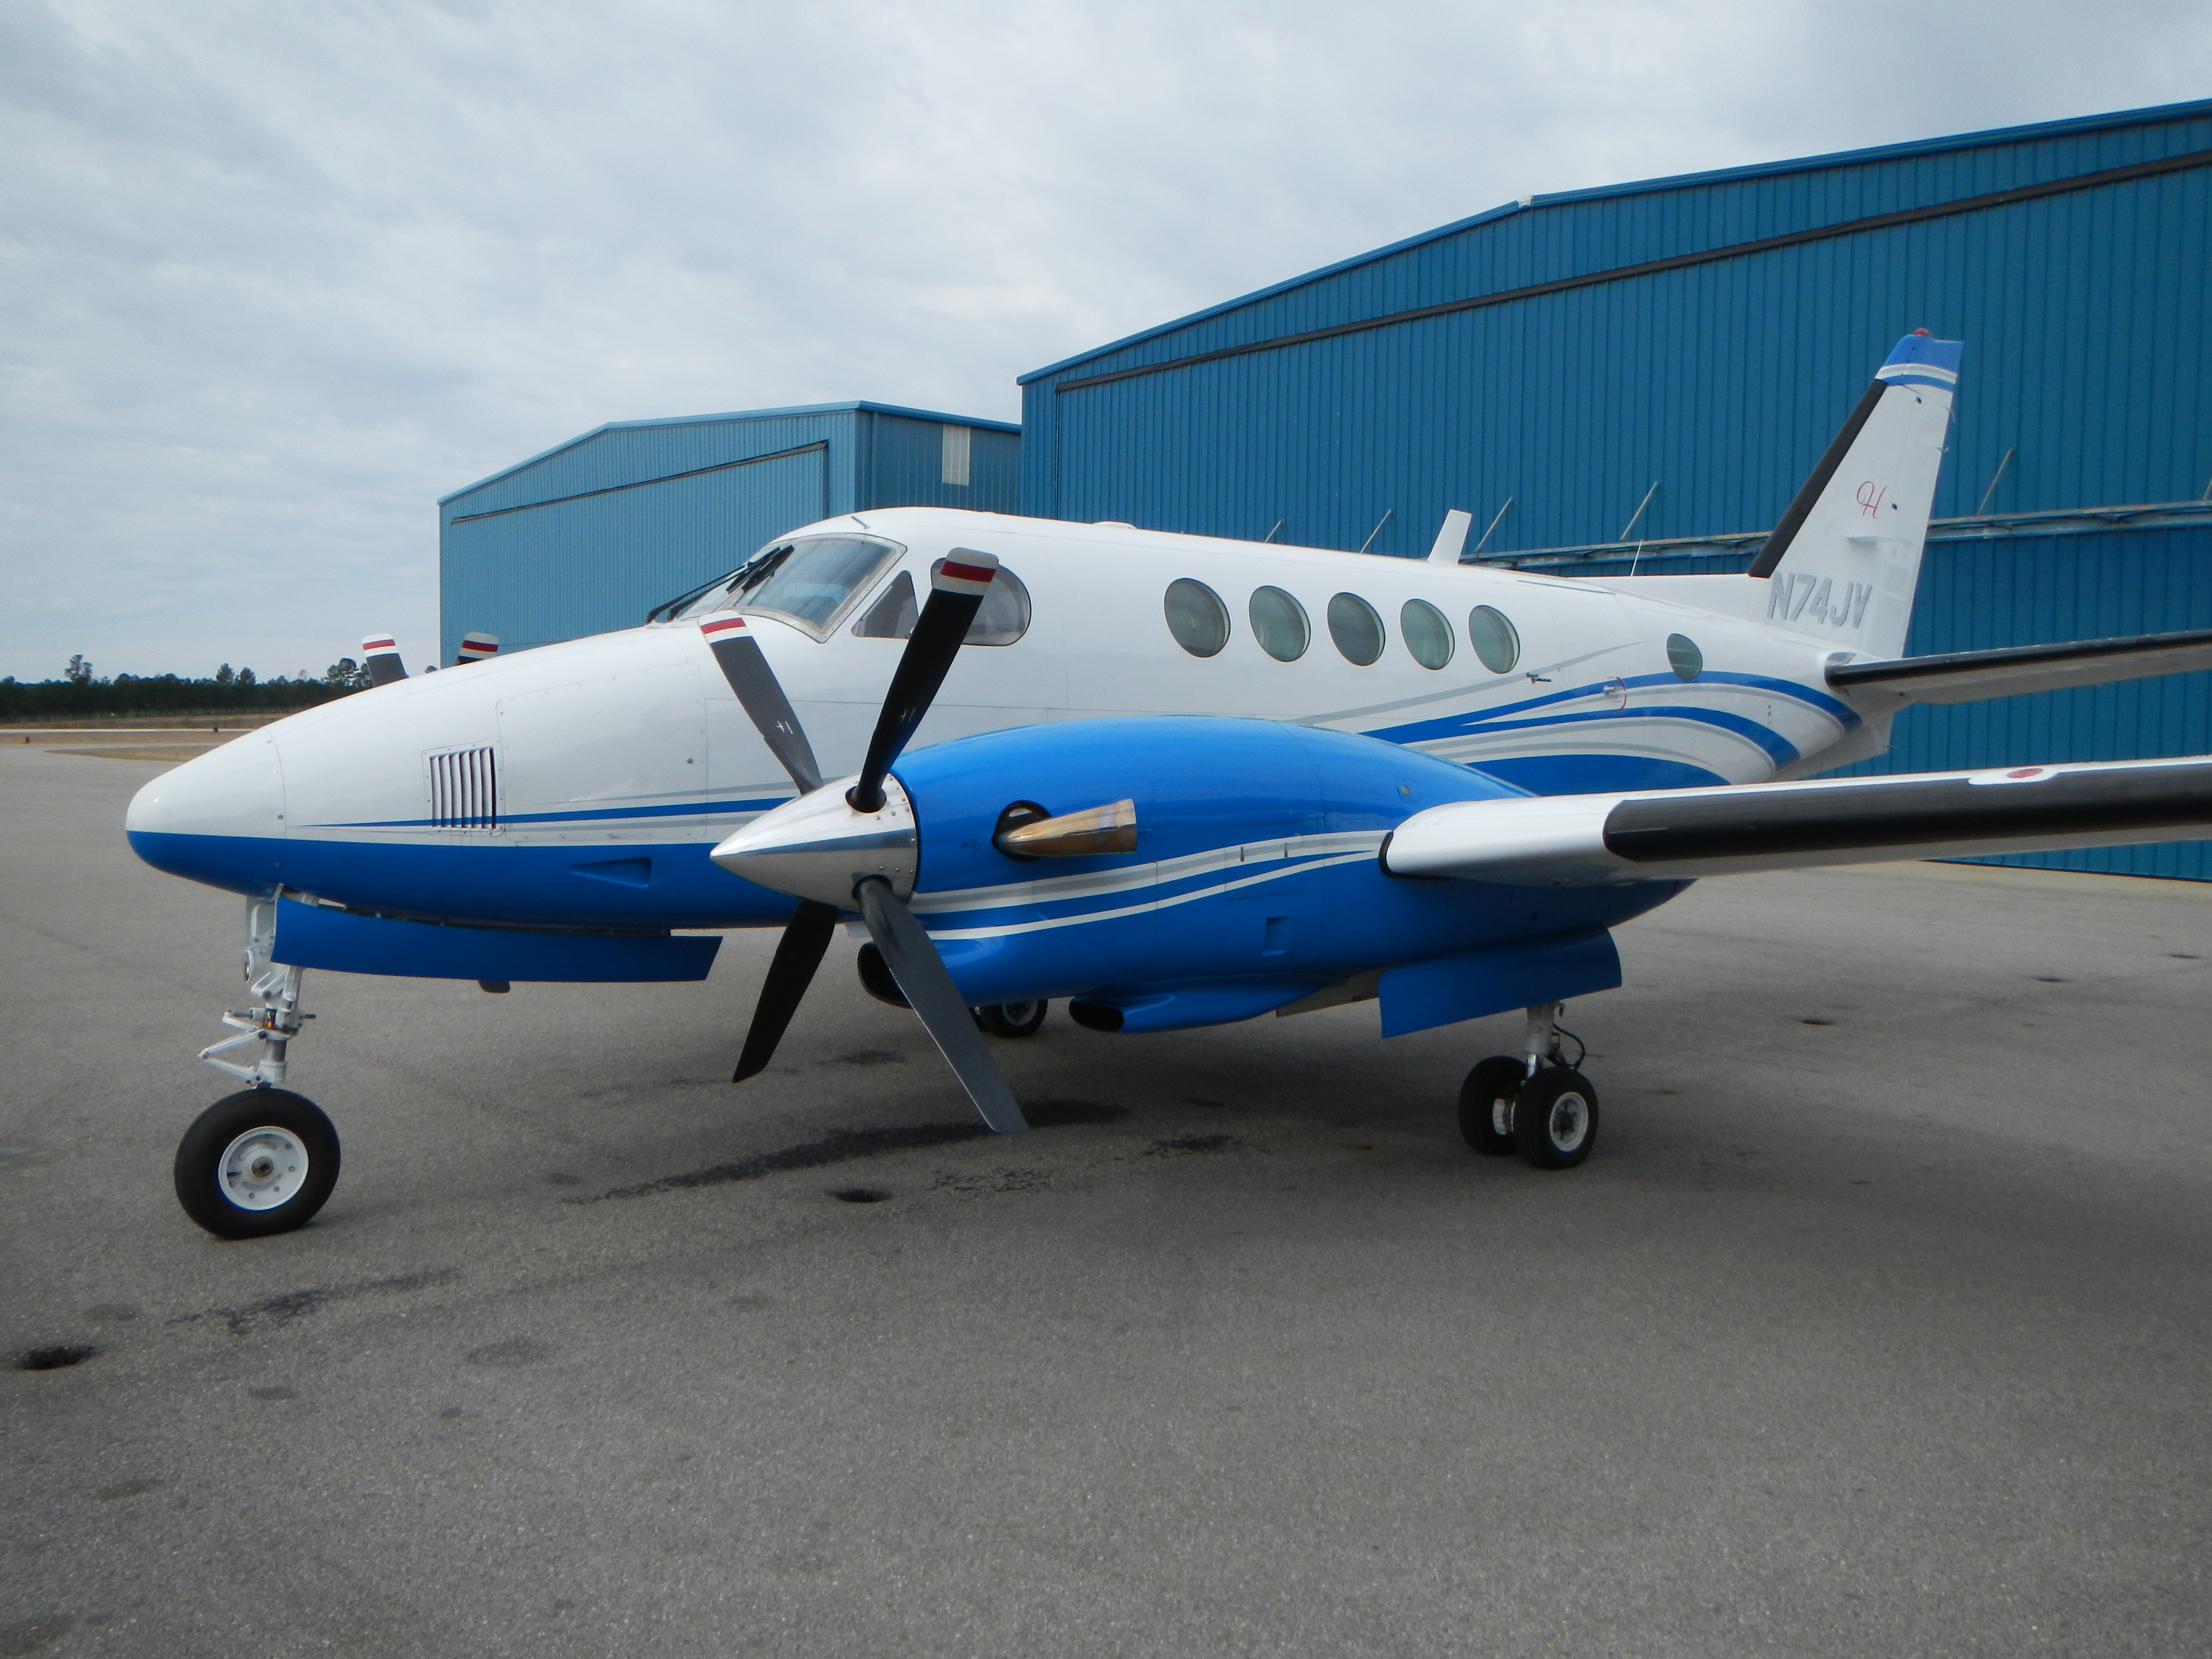 Aircraft Listing - King Air 100 listed for sale